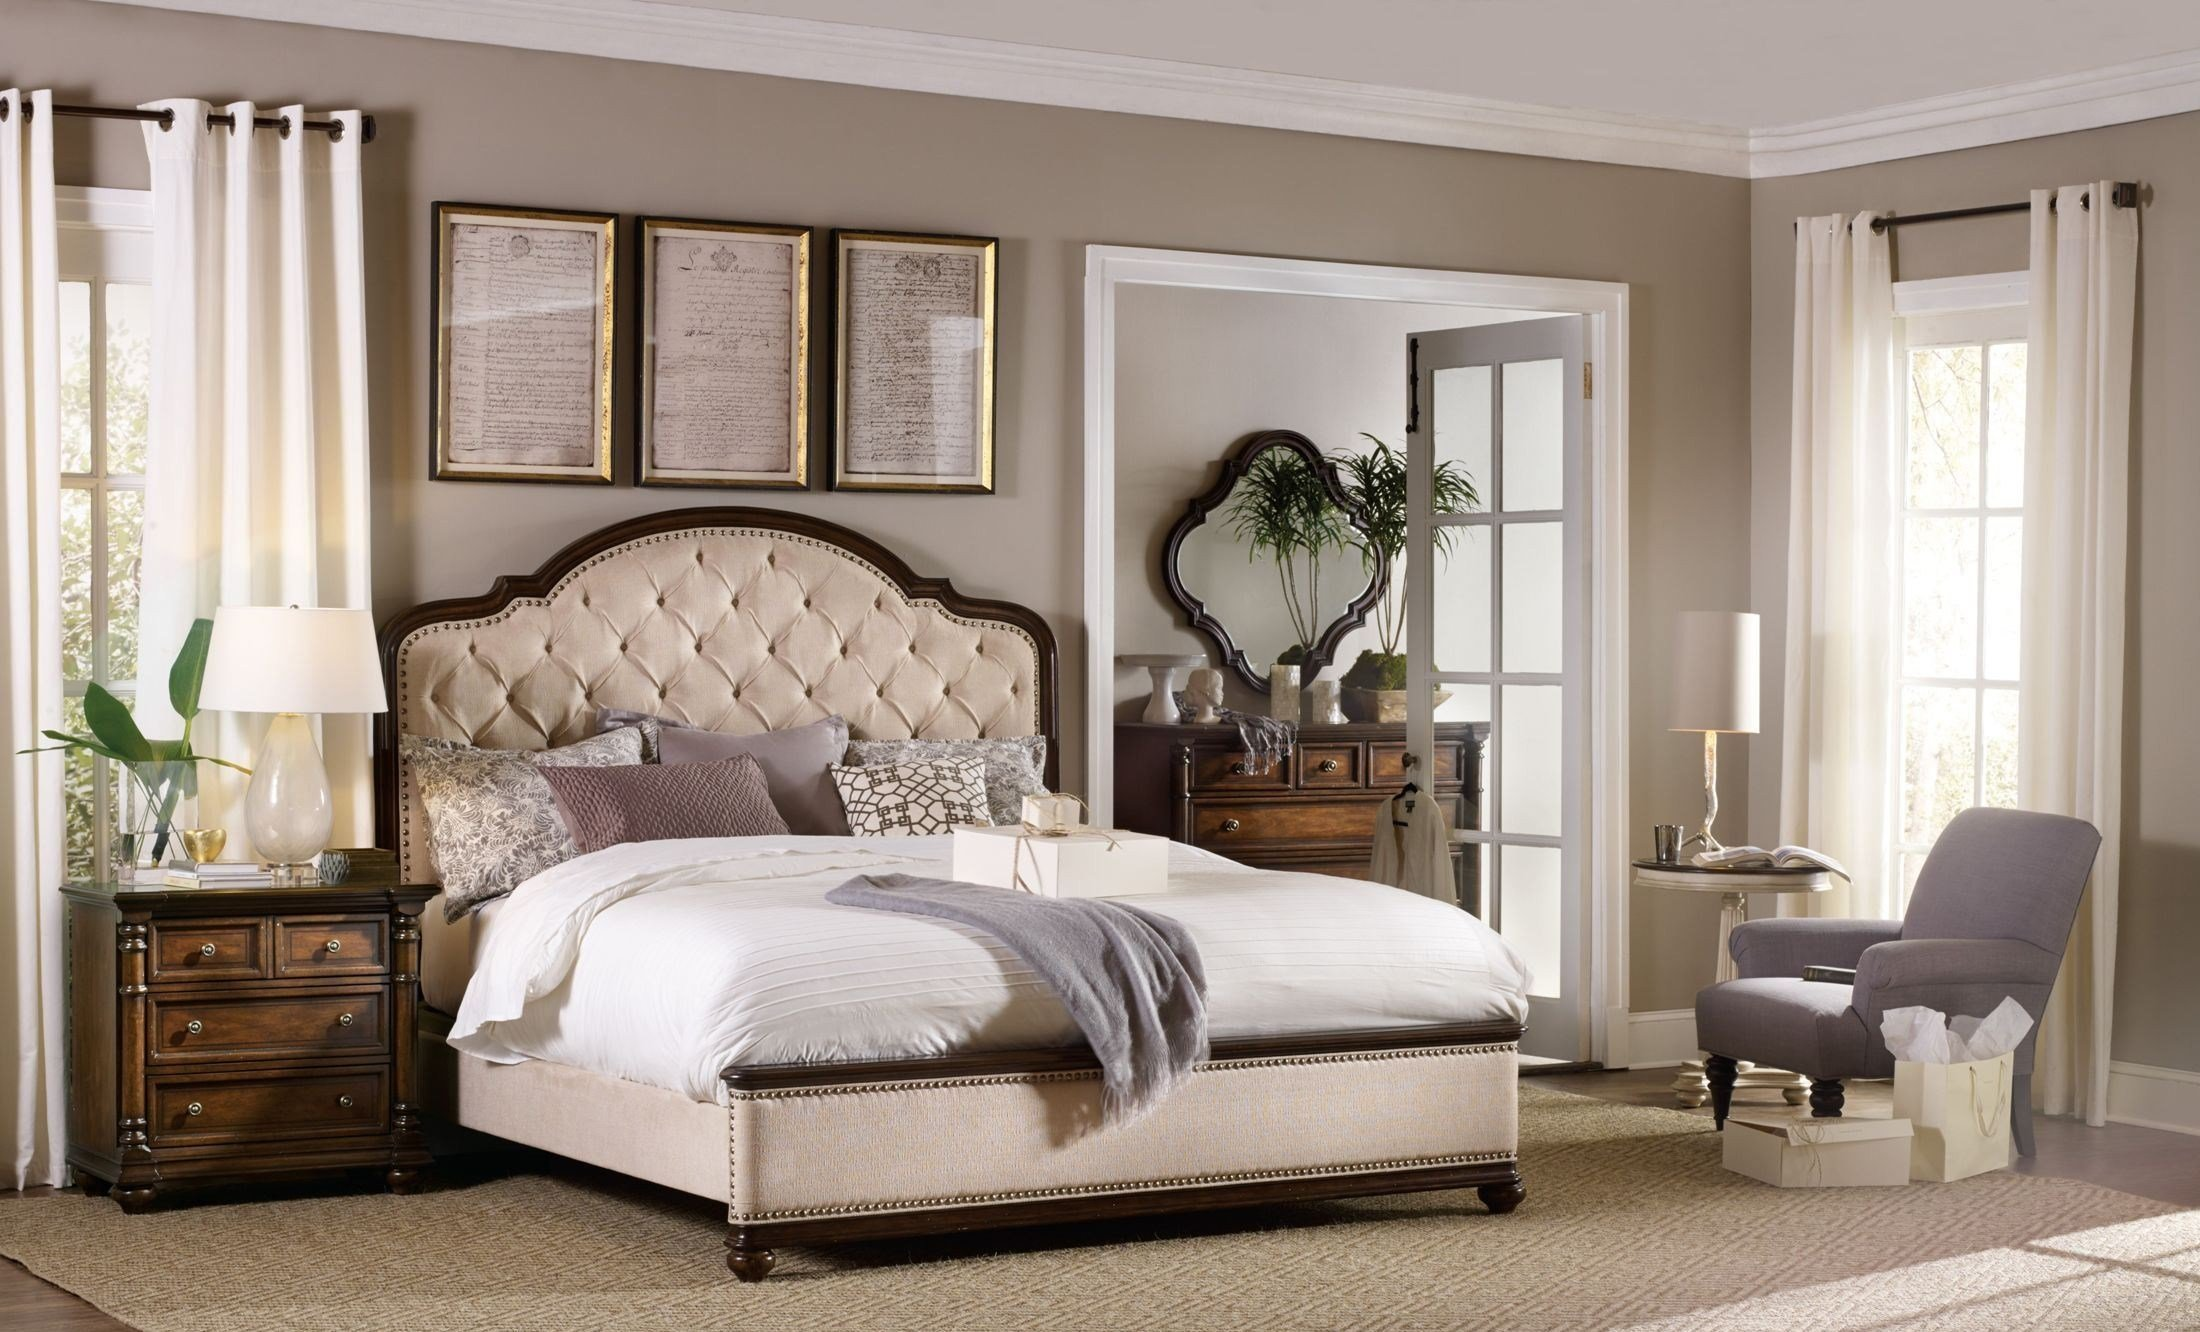 Best Leesburg Beige Upholstered Bedroom Set From H**K*R With Pictures